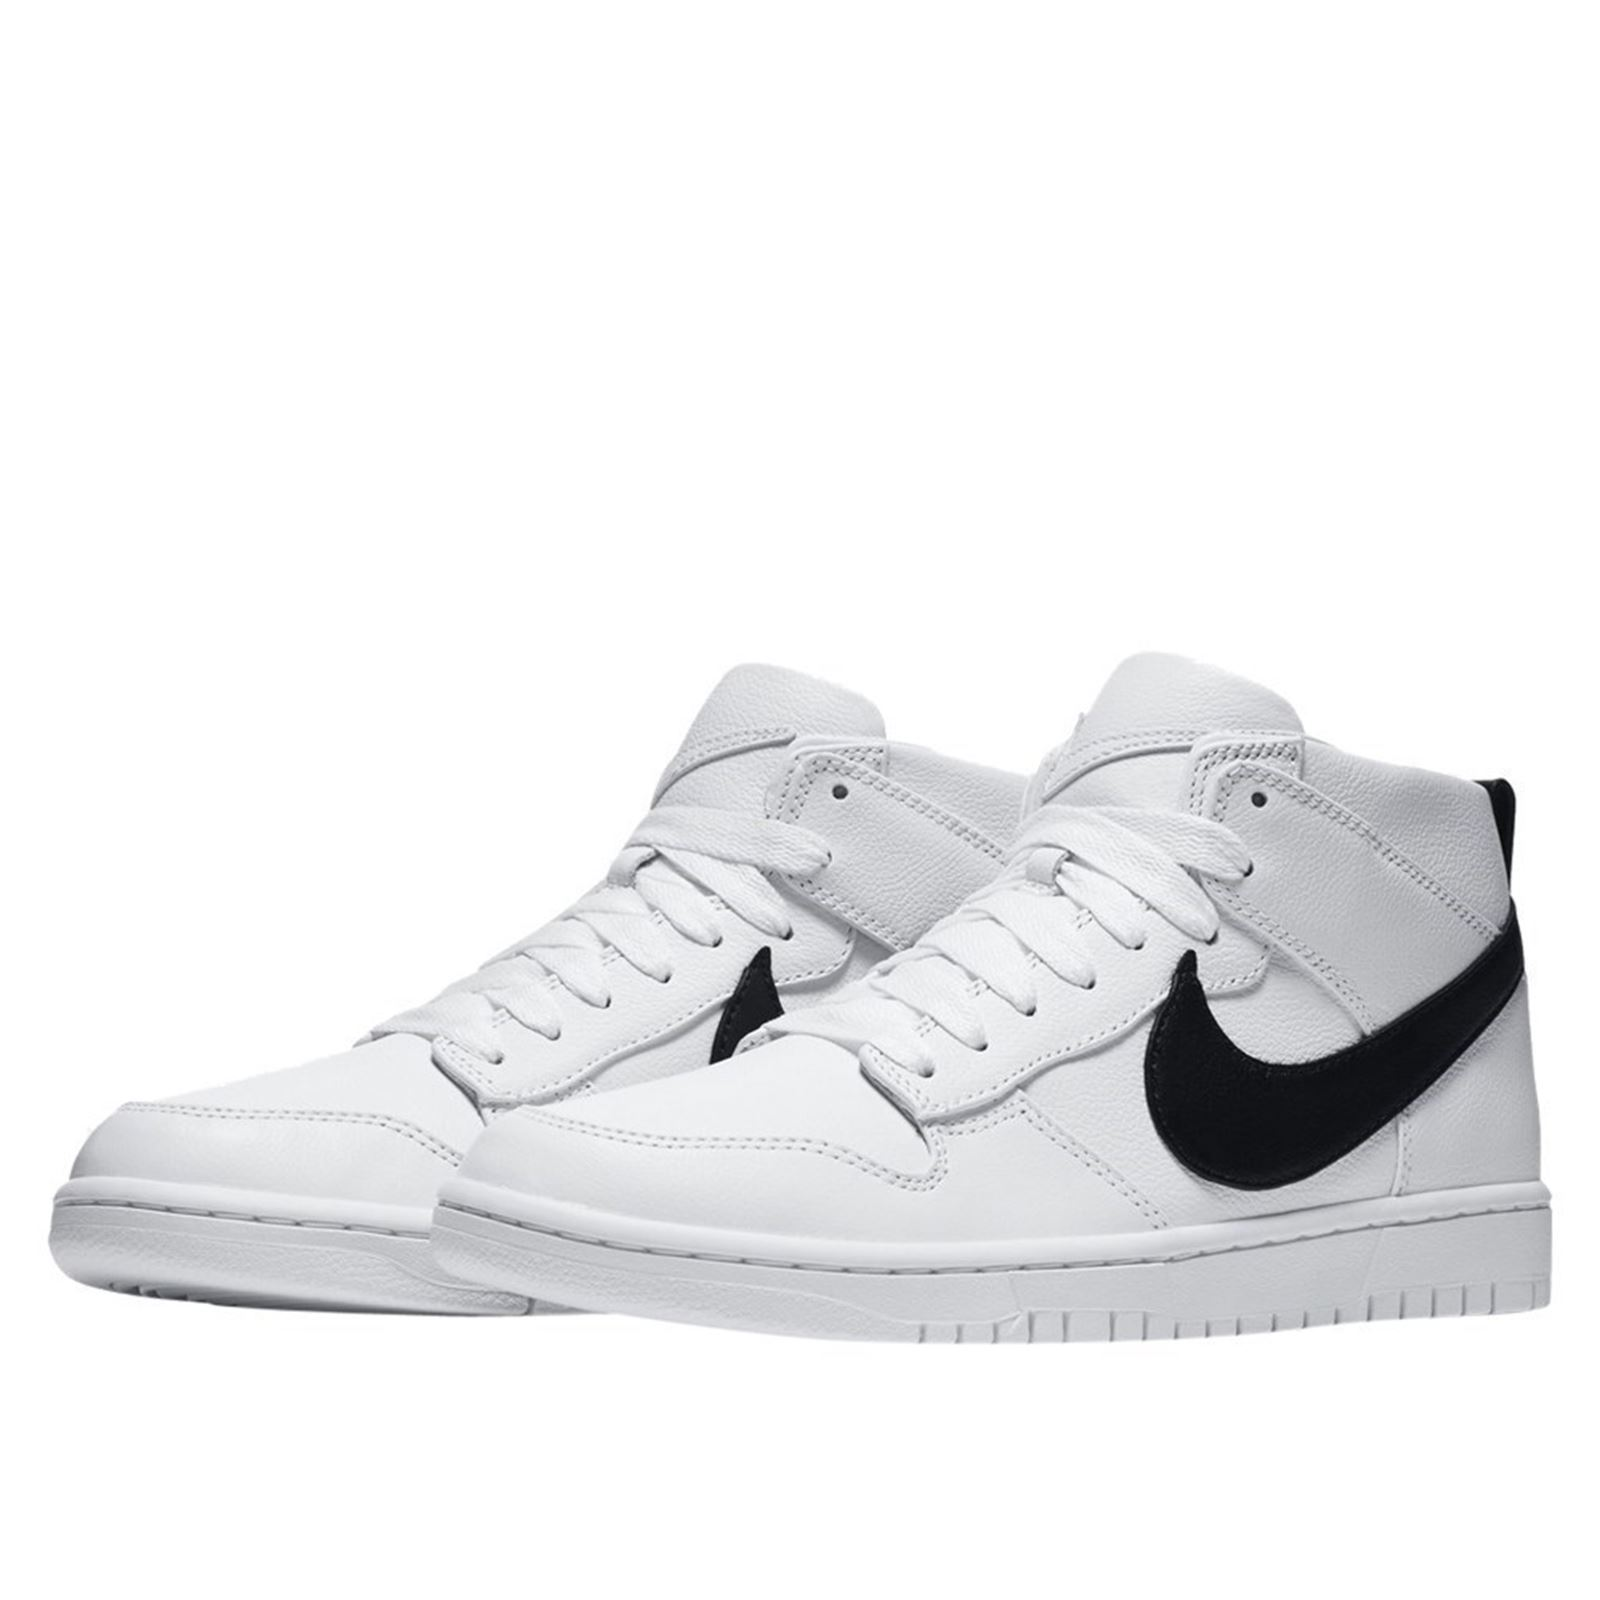 buy popular cce71 ce402 NIKE Dunk lux chukka rt - Baskets montantes - blanc